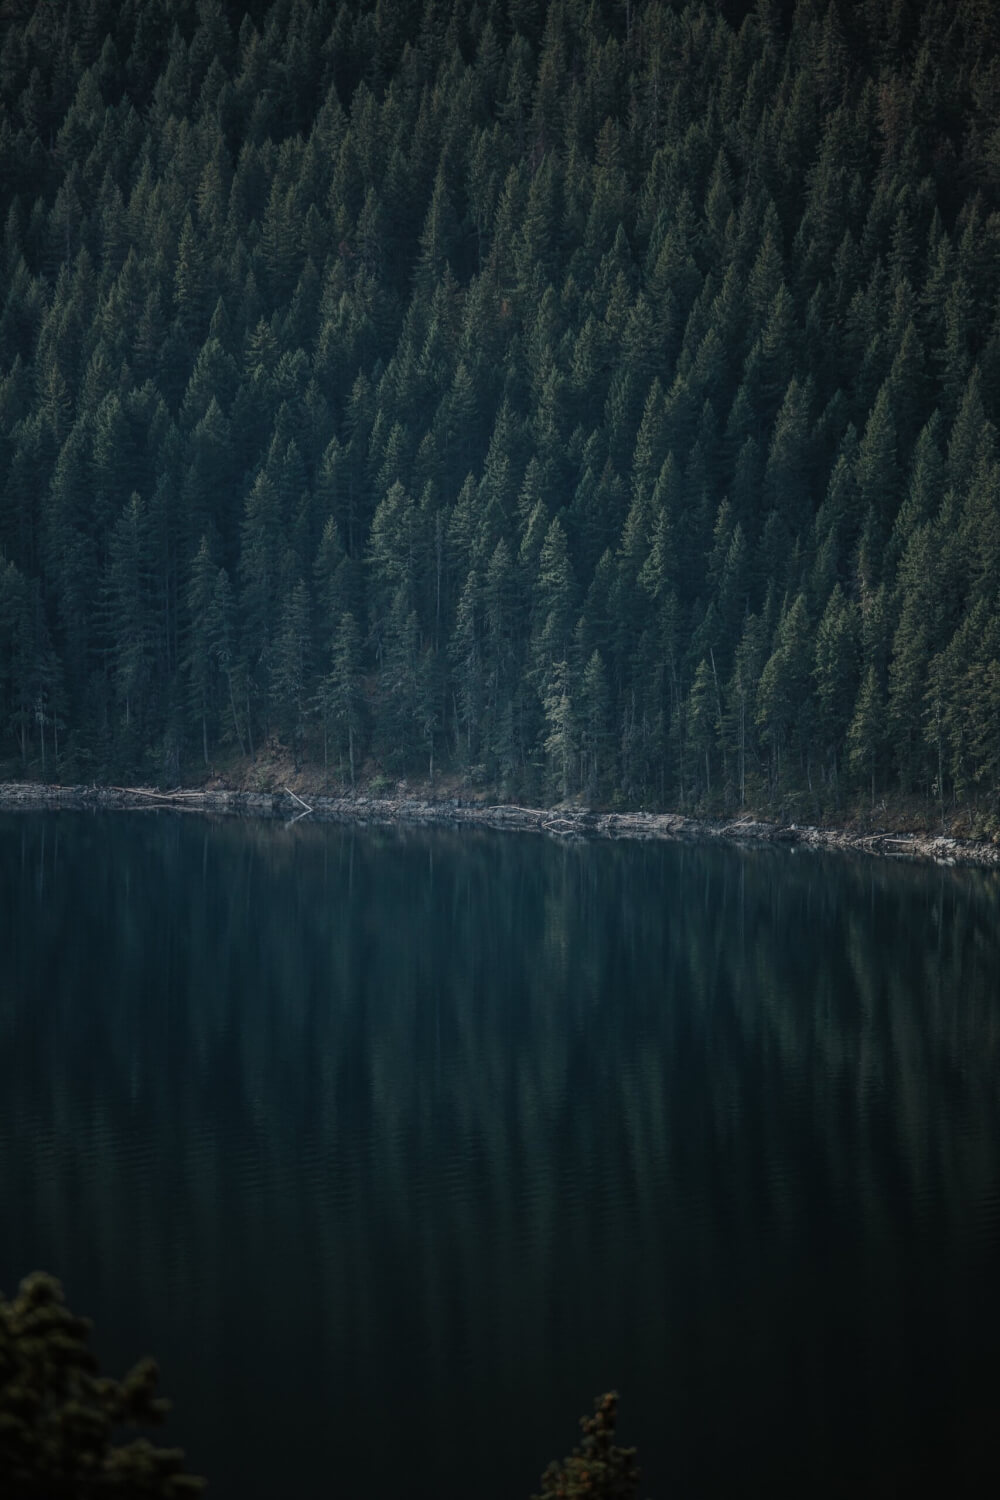 A view of Washington's dense forest across a placid lake. The ample pine trees and water make it the ideal habitat for Sasquatch.